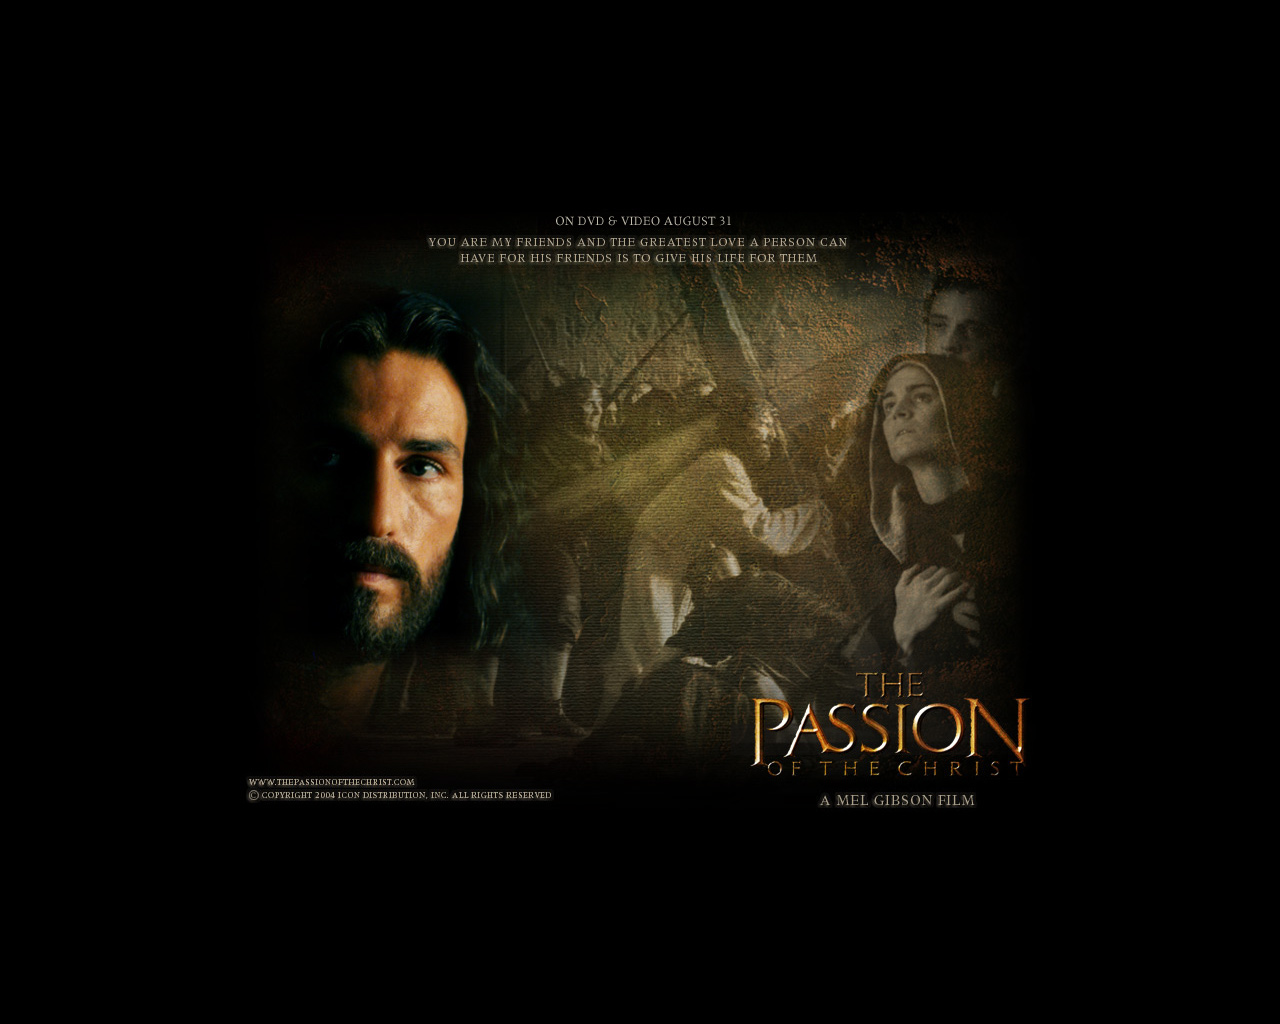 the passion of the christ essay velcro friday gq the passion of the christ essay